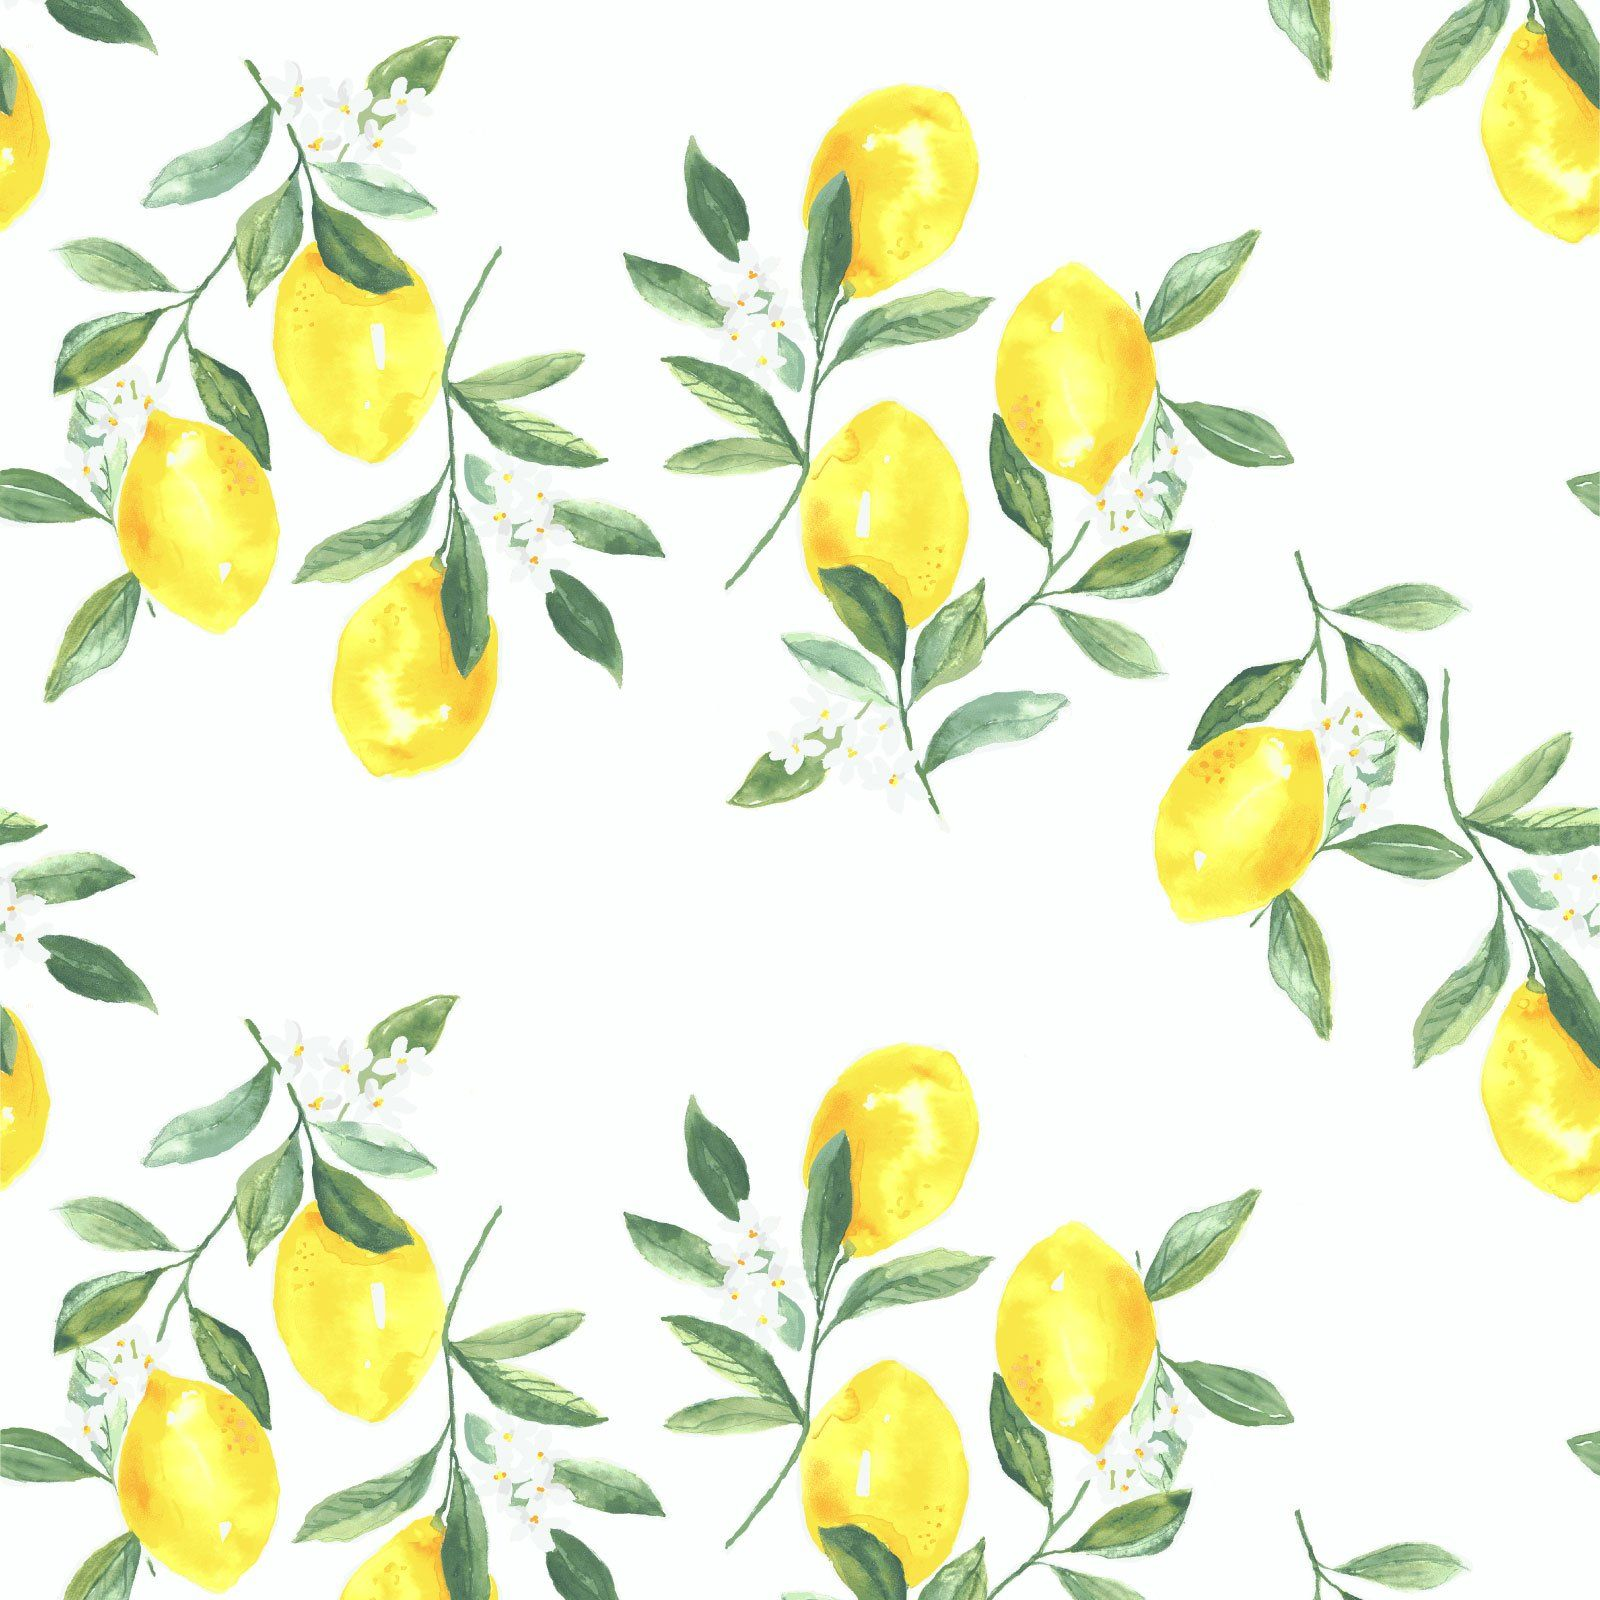 Fresh Squeezed Wallpaper In White Wallpaper Laptop Wallpaper Desktop Wallpapers Laptop Wallpaper